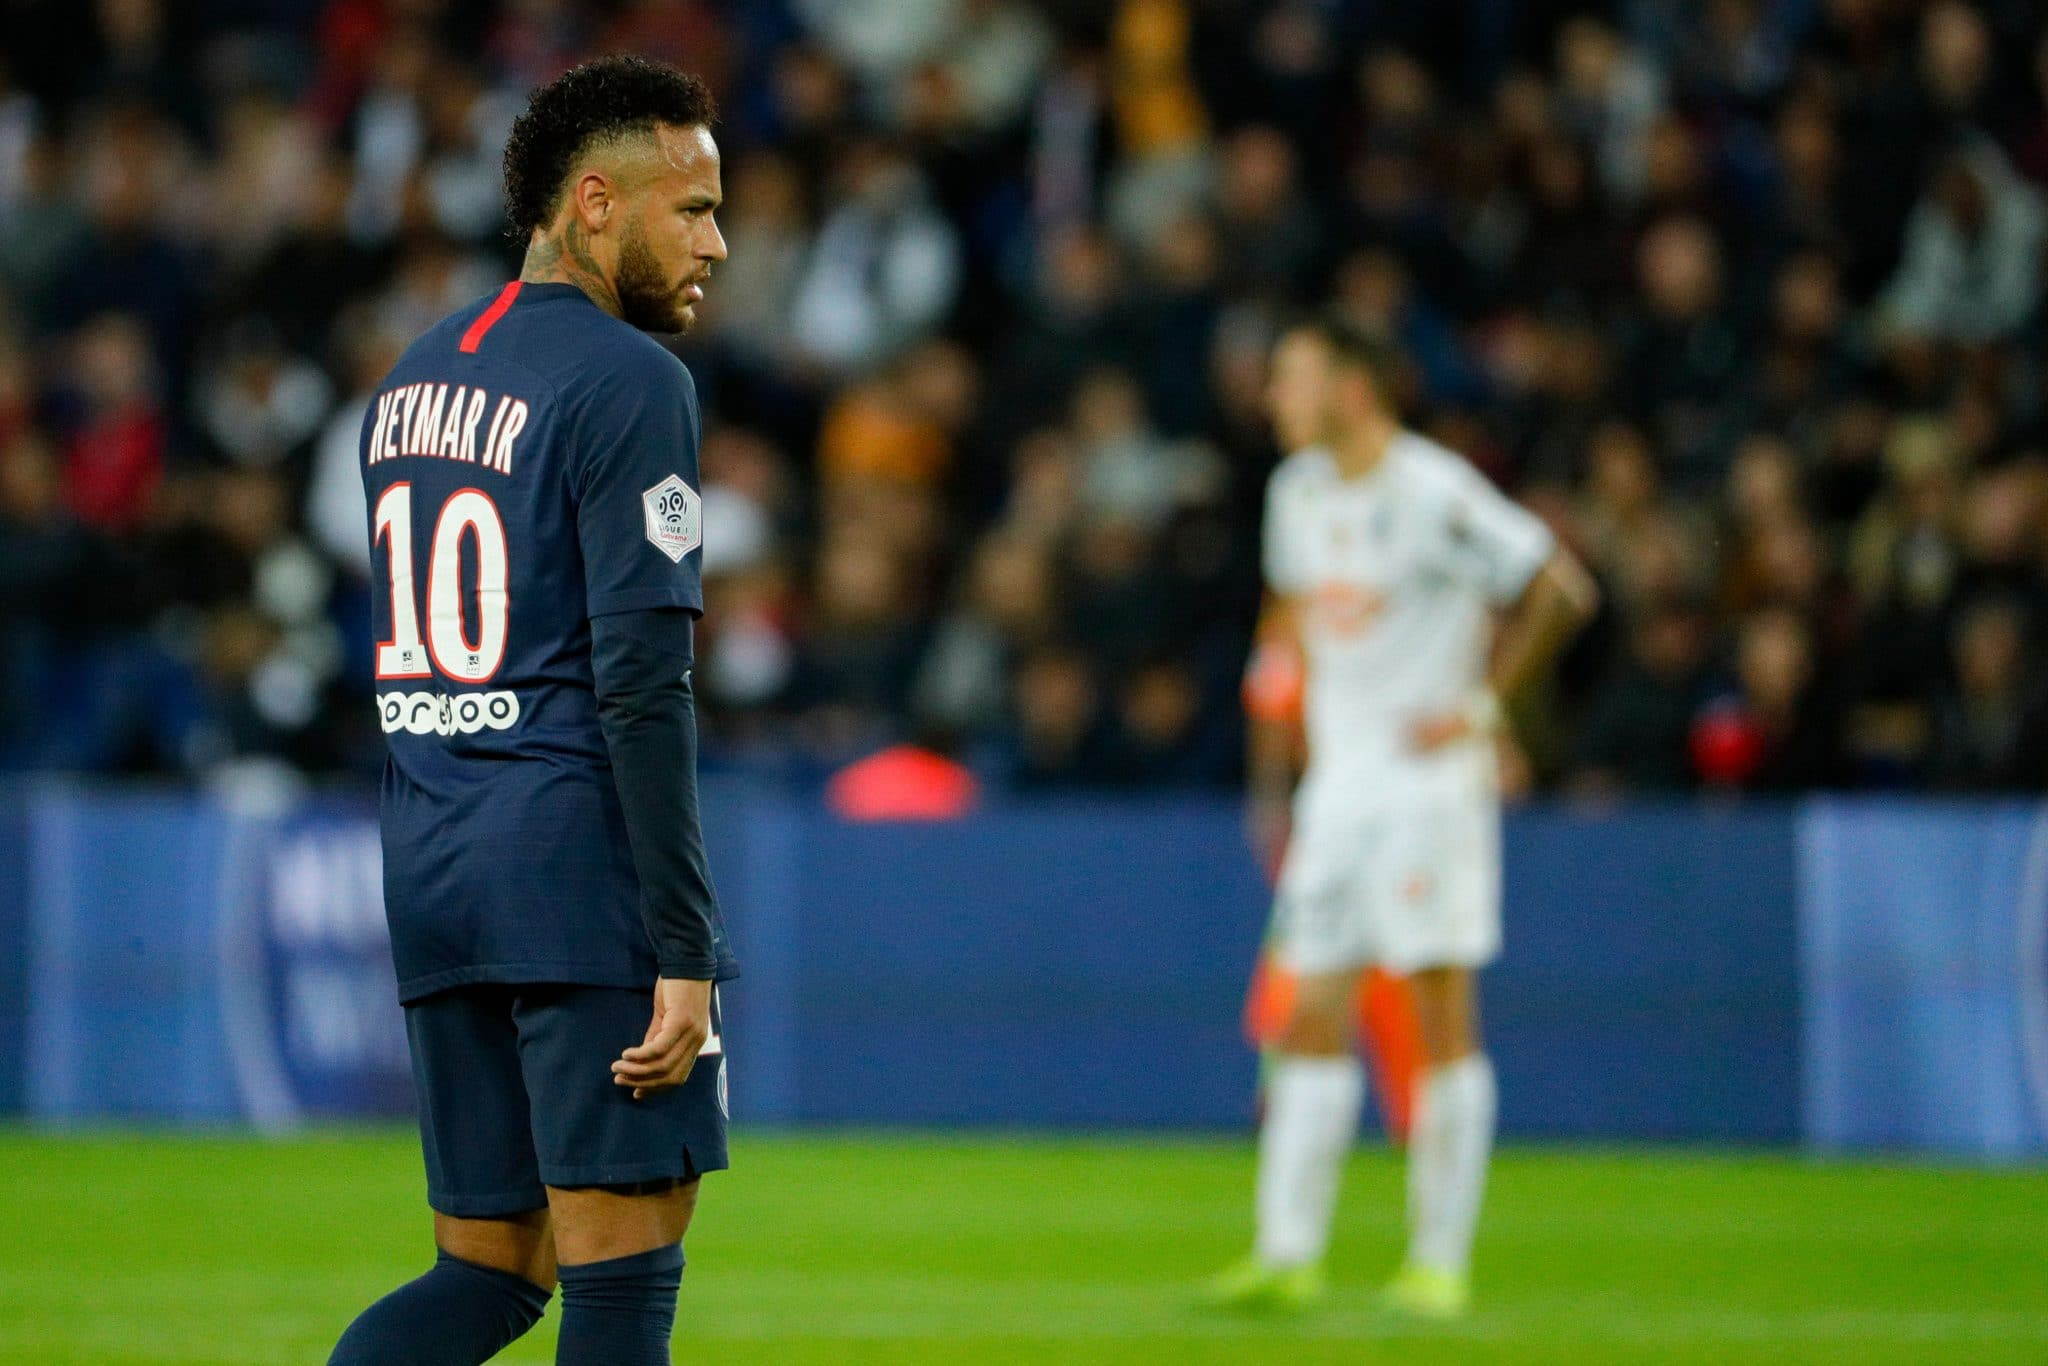 Olympiakos vs psg betting preview betting online kentucky derby